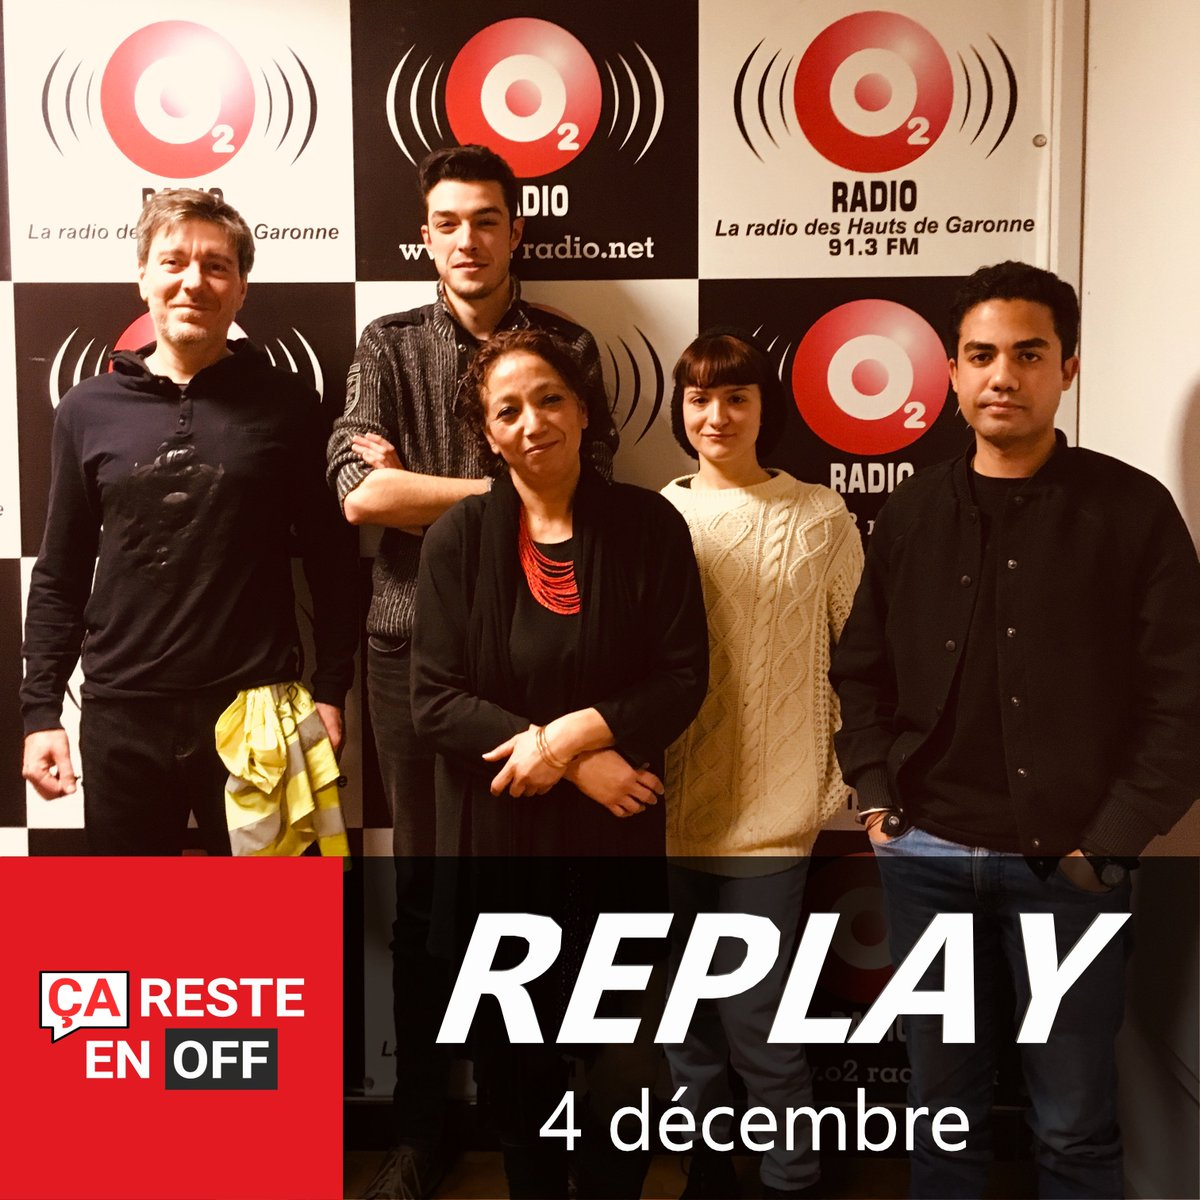 test Twitter Media - 🔁[PODCAST] #EnOff (Ré)écoutez la dernière émission avec @BGothiere, cofondatrice de @L214 ici 👉 https://t.co/1bs3Ogf57M  ➡️#foiegras #antispecisme #5decembre #GreveGenerale #PISA #education #mali #France https://t.co/doLzQIakAS